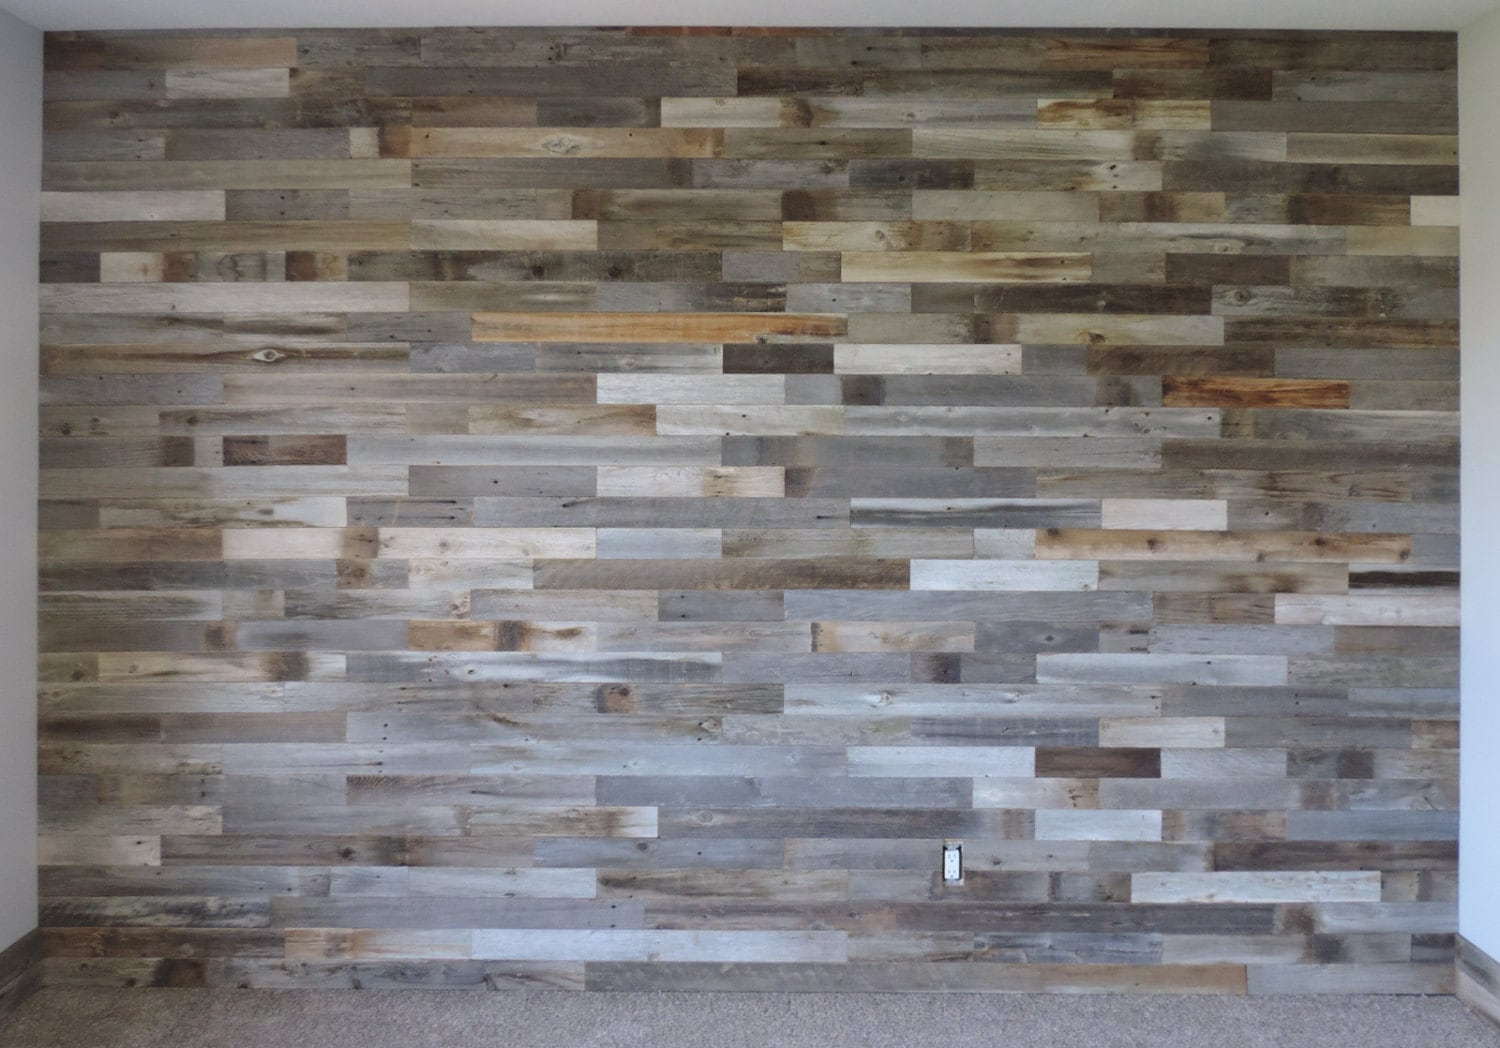 Decorative Wood Walls reclaimed wood wall paneling diy asst 3-inch boards. barnwood